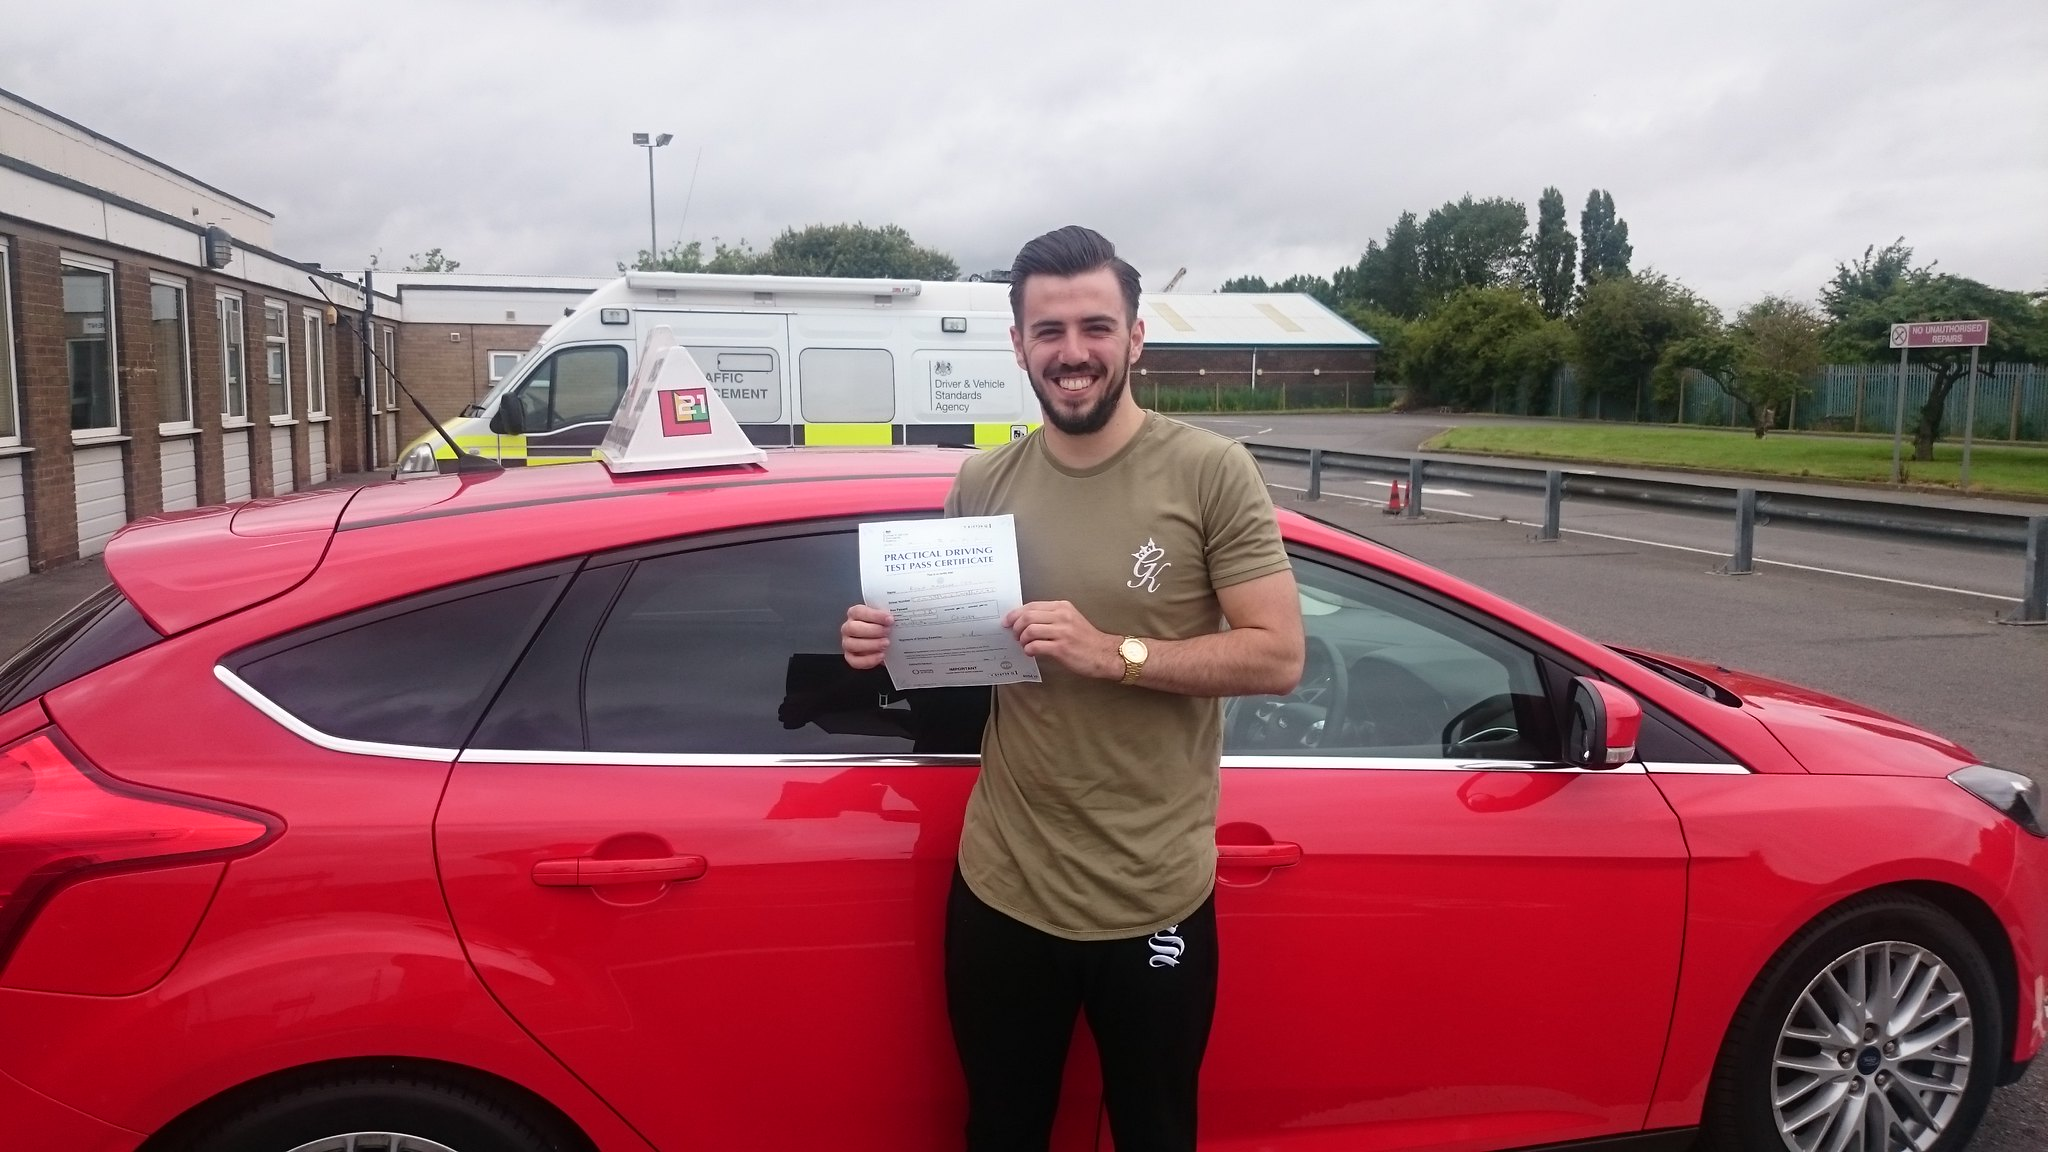 Ryan Cox passes driving test in grimsby with 21st Century Driving